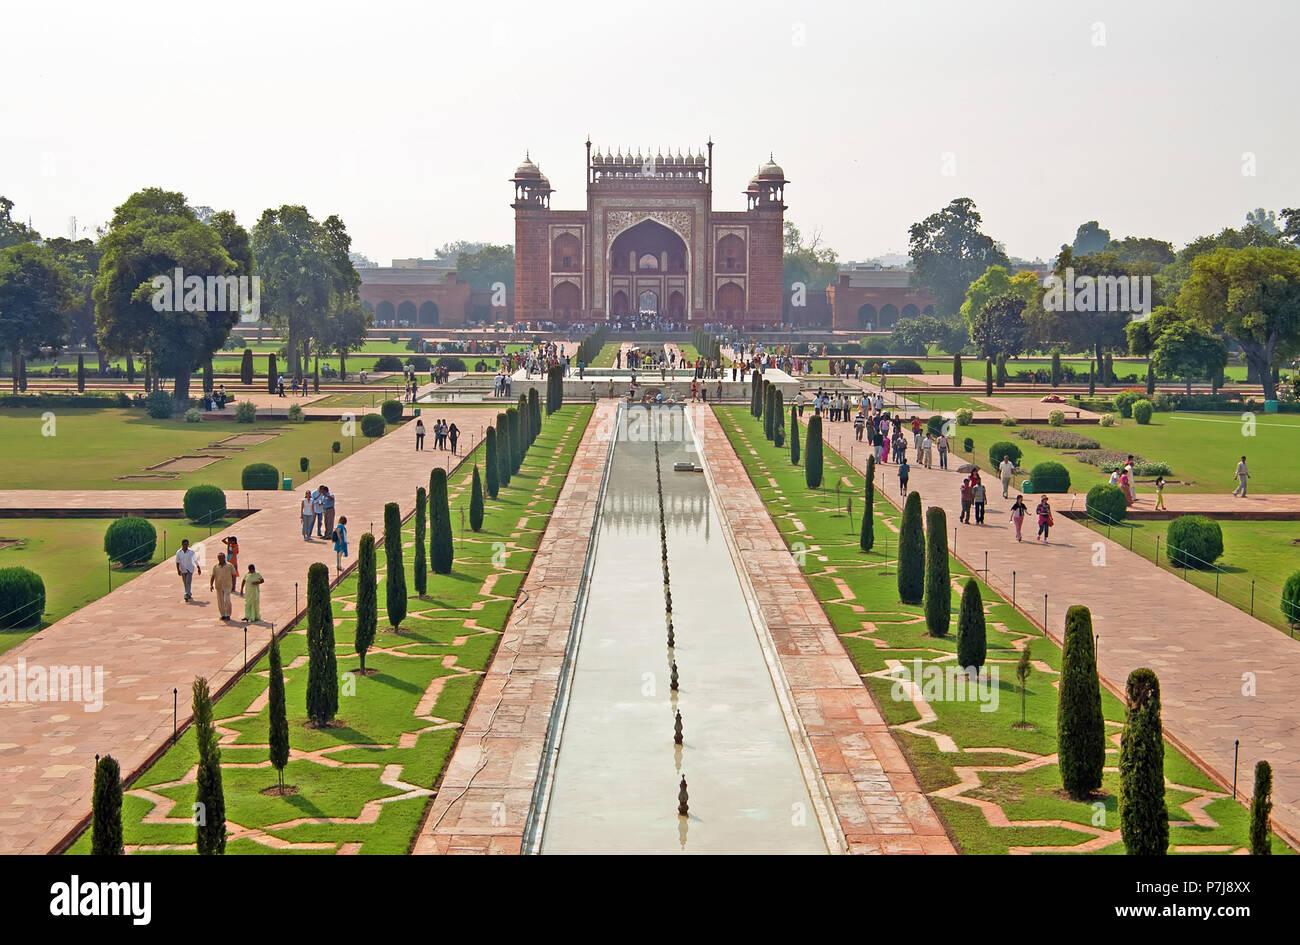 AGRA, INDIA - OCTOBER 18, 2008: view on entrance to Taj Mahal complex in Agra, India. It was commissioned in 1632 by the Mughal emperor - Stock Image